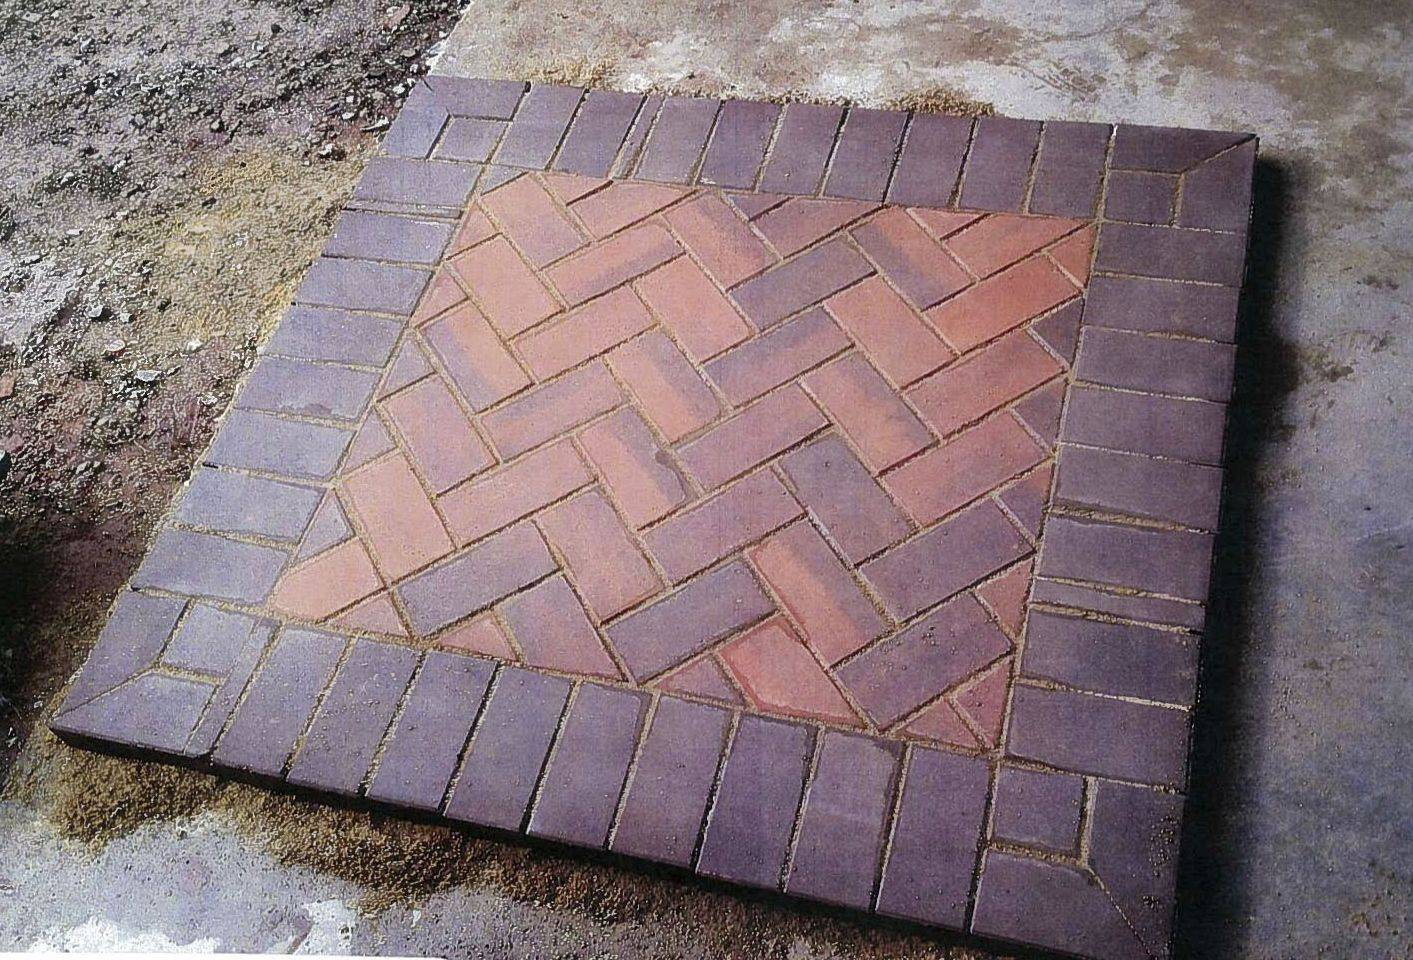 Glen Ellyn will be adding brick pavers to a new commuter parking lot and the adjoining sidewalk, but Trustee Diane McGinley voted against the project because she believes the pavers on the sidewalks could be a tripping hazard.